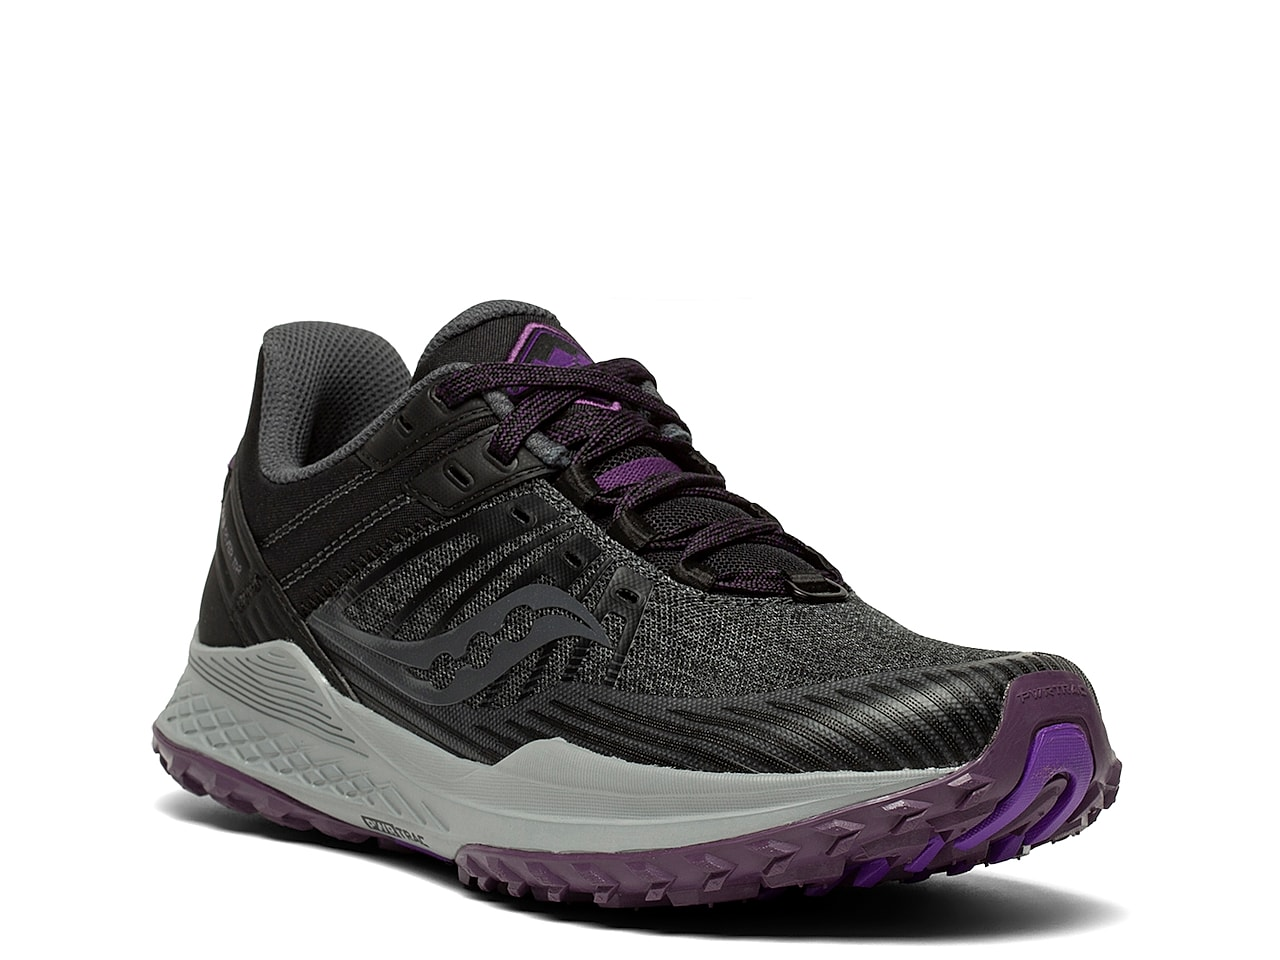 Saucony Mad River TR 2 Trail Running Shoe - Women's